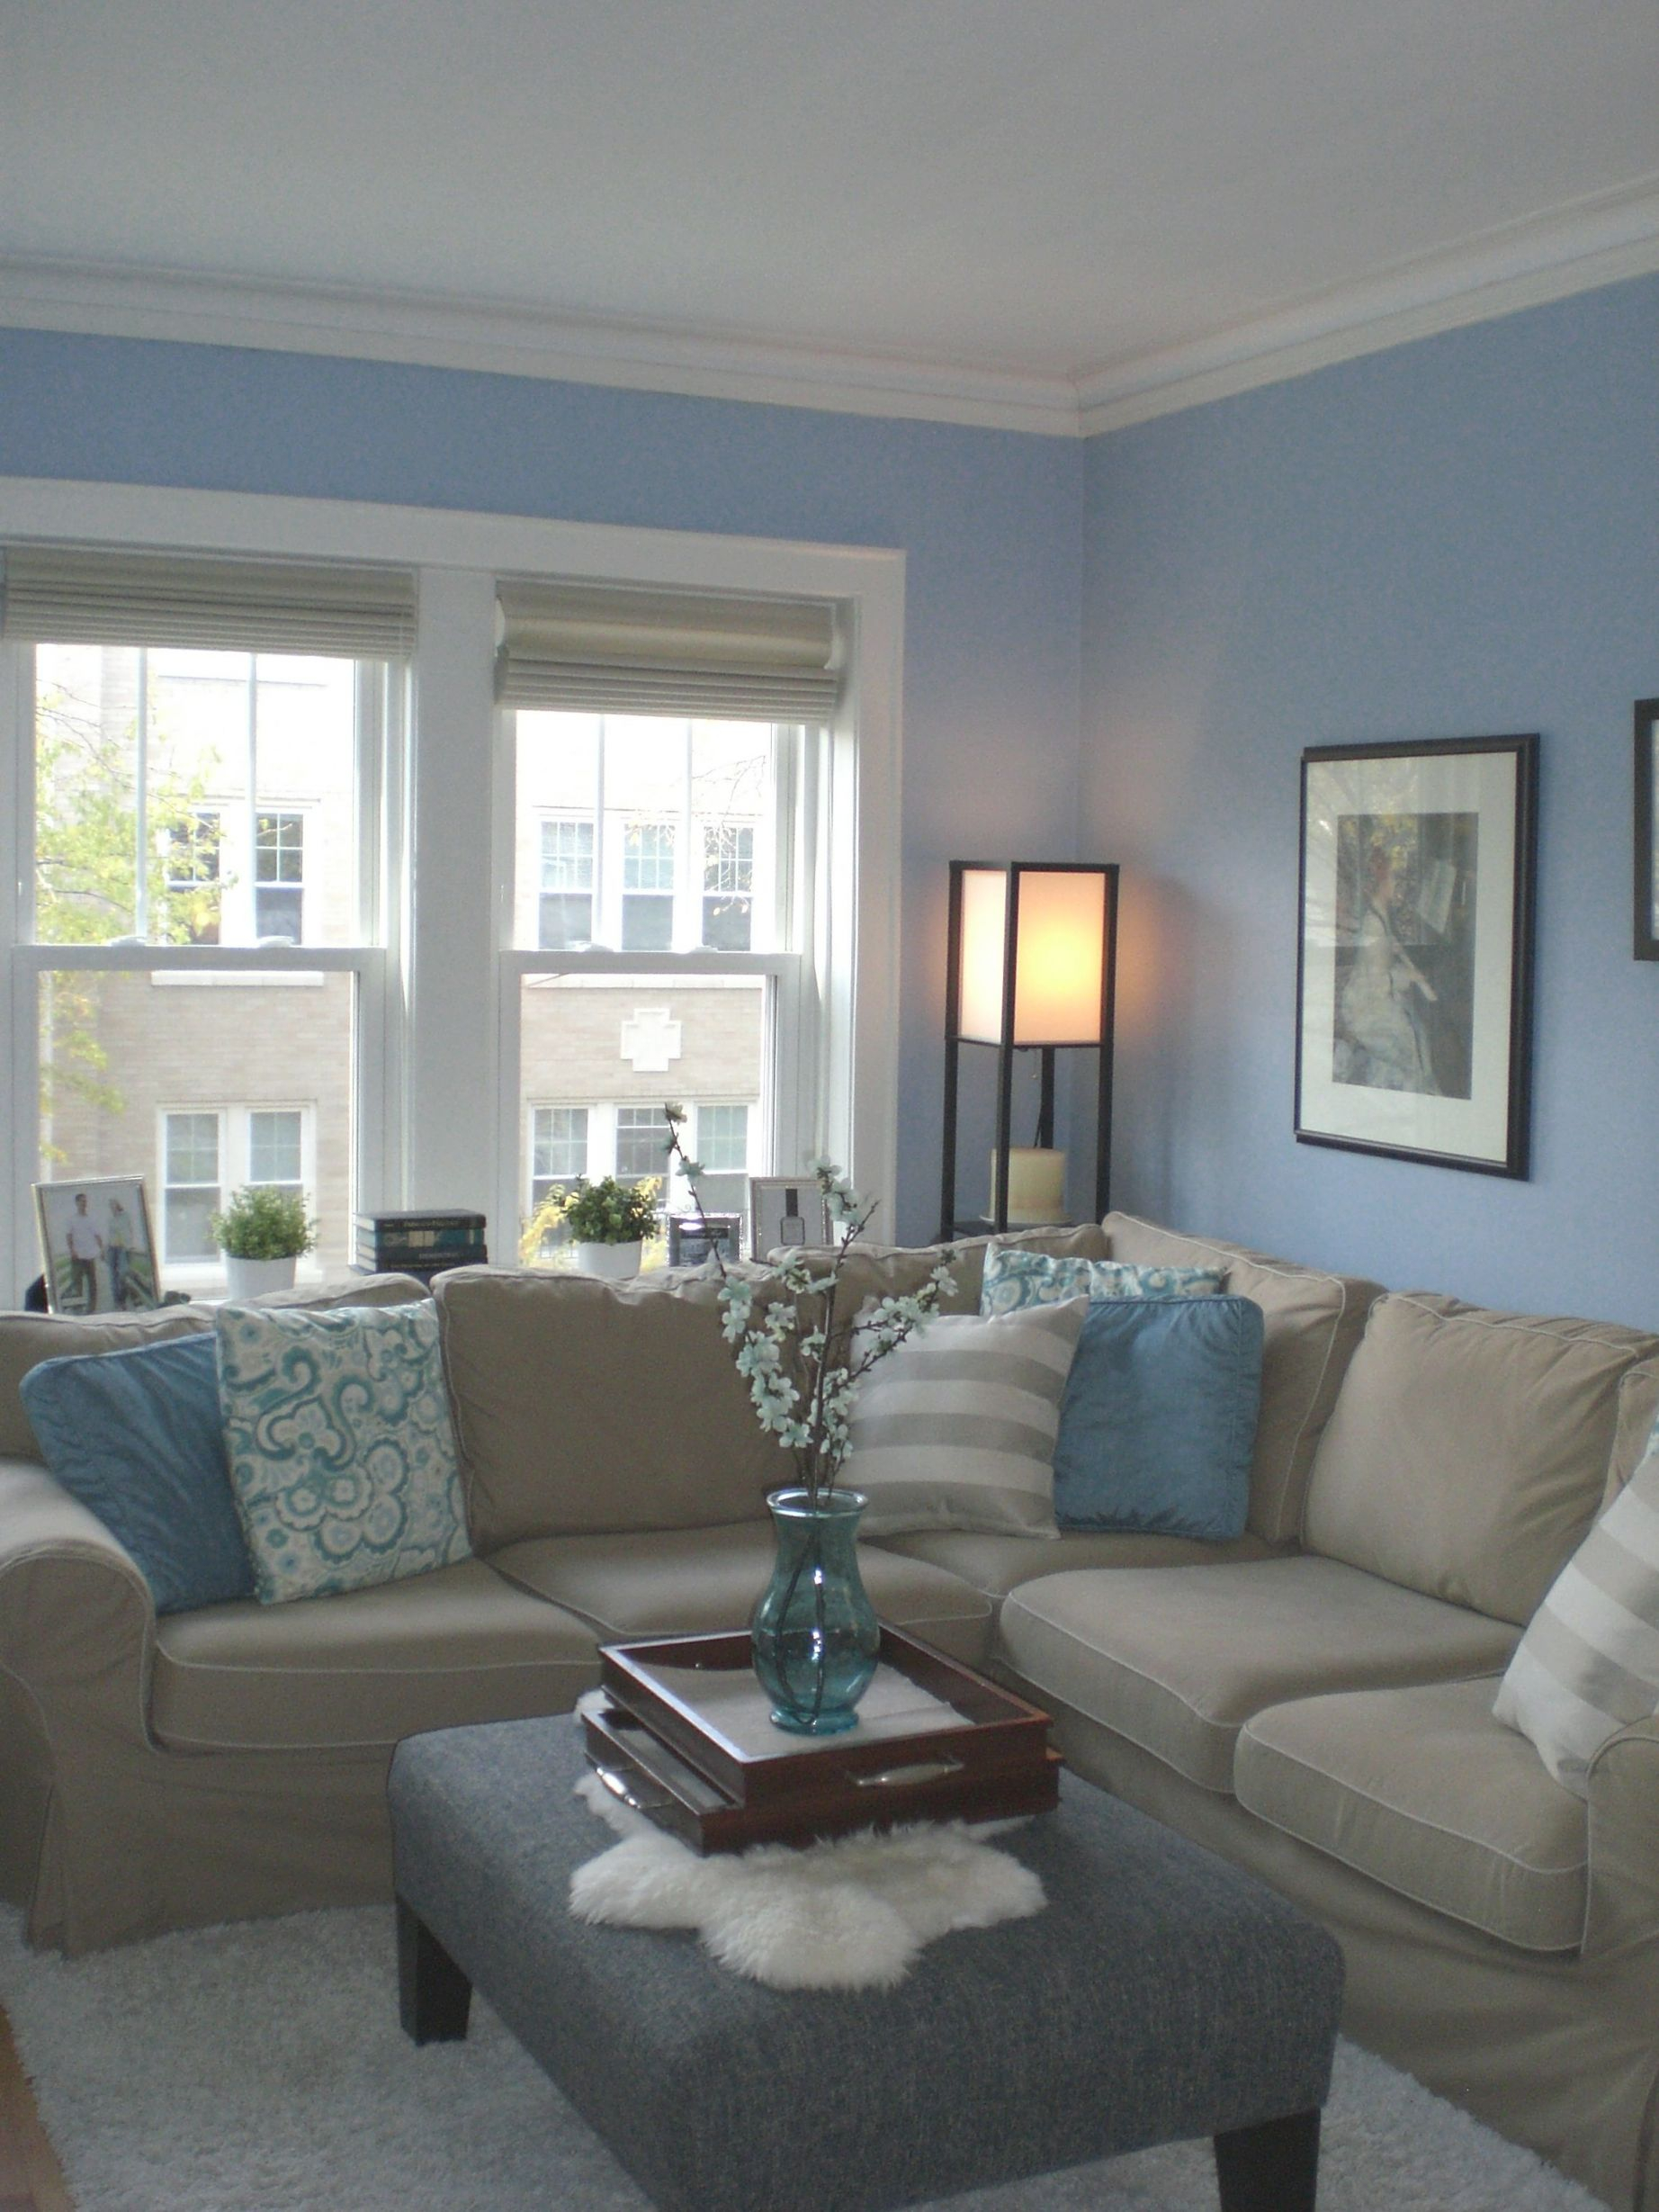 10 inspiration for blue and tan living